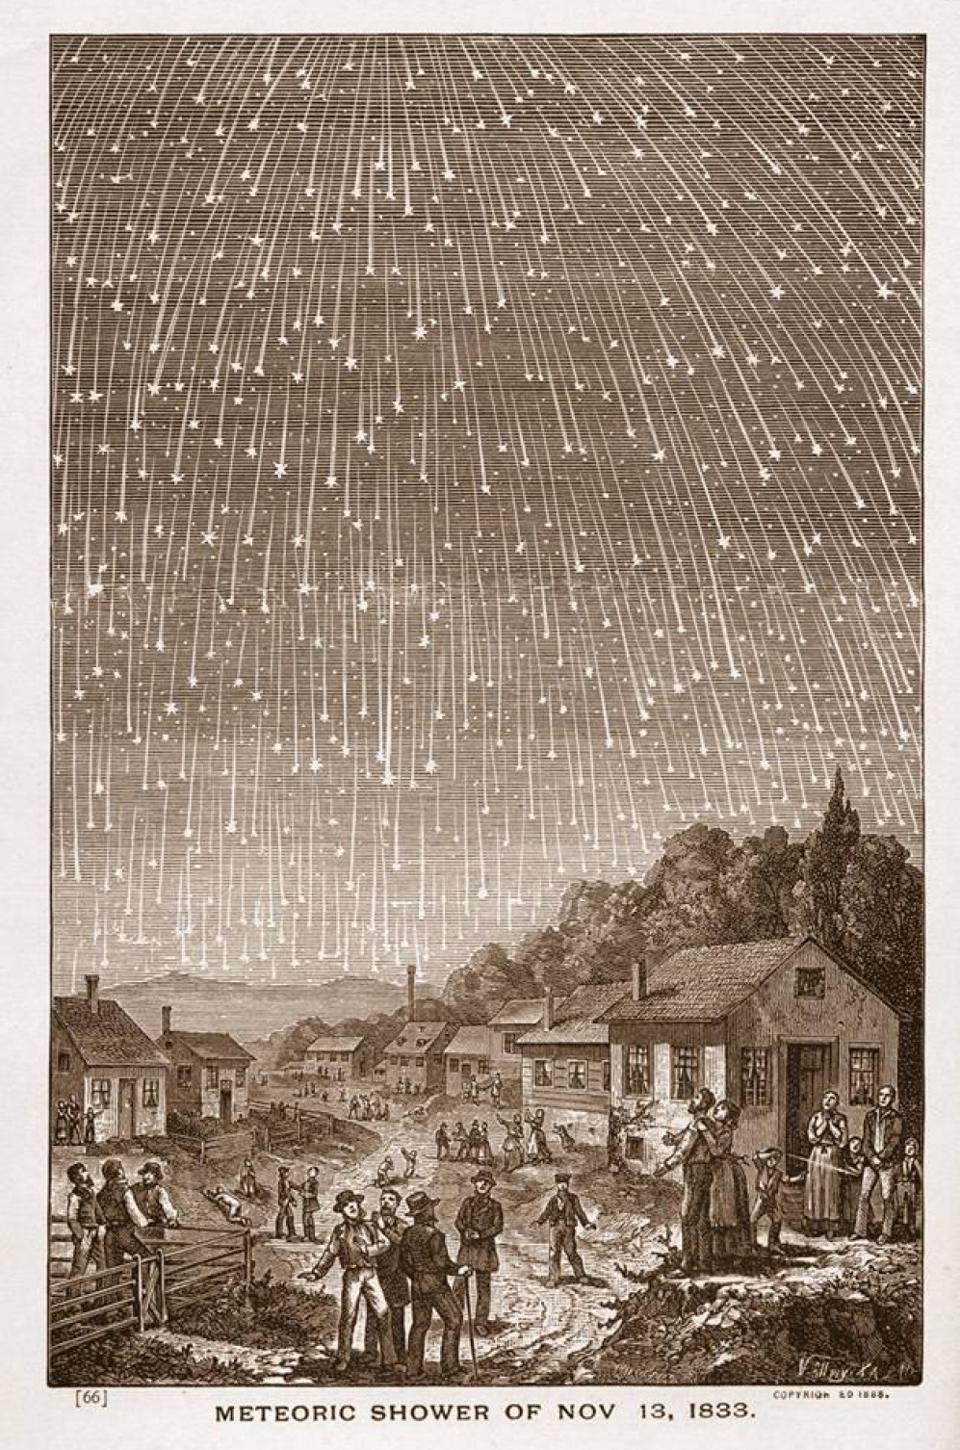 The great meteor storm of 1833, which repeats roughly every 33 years.